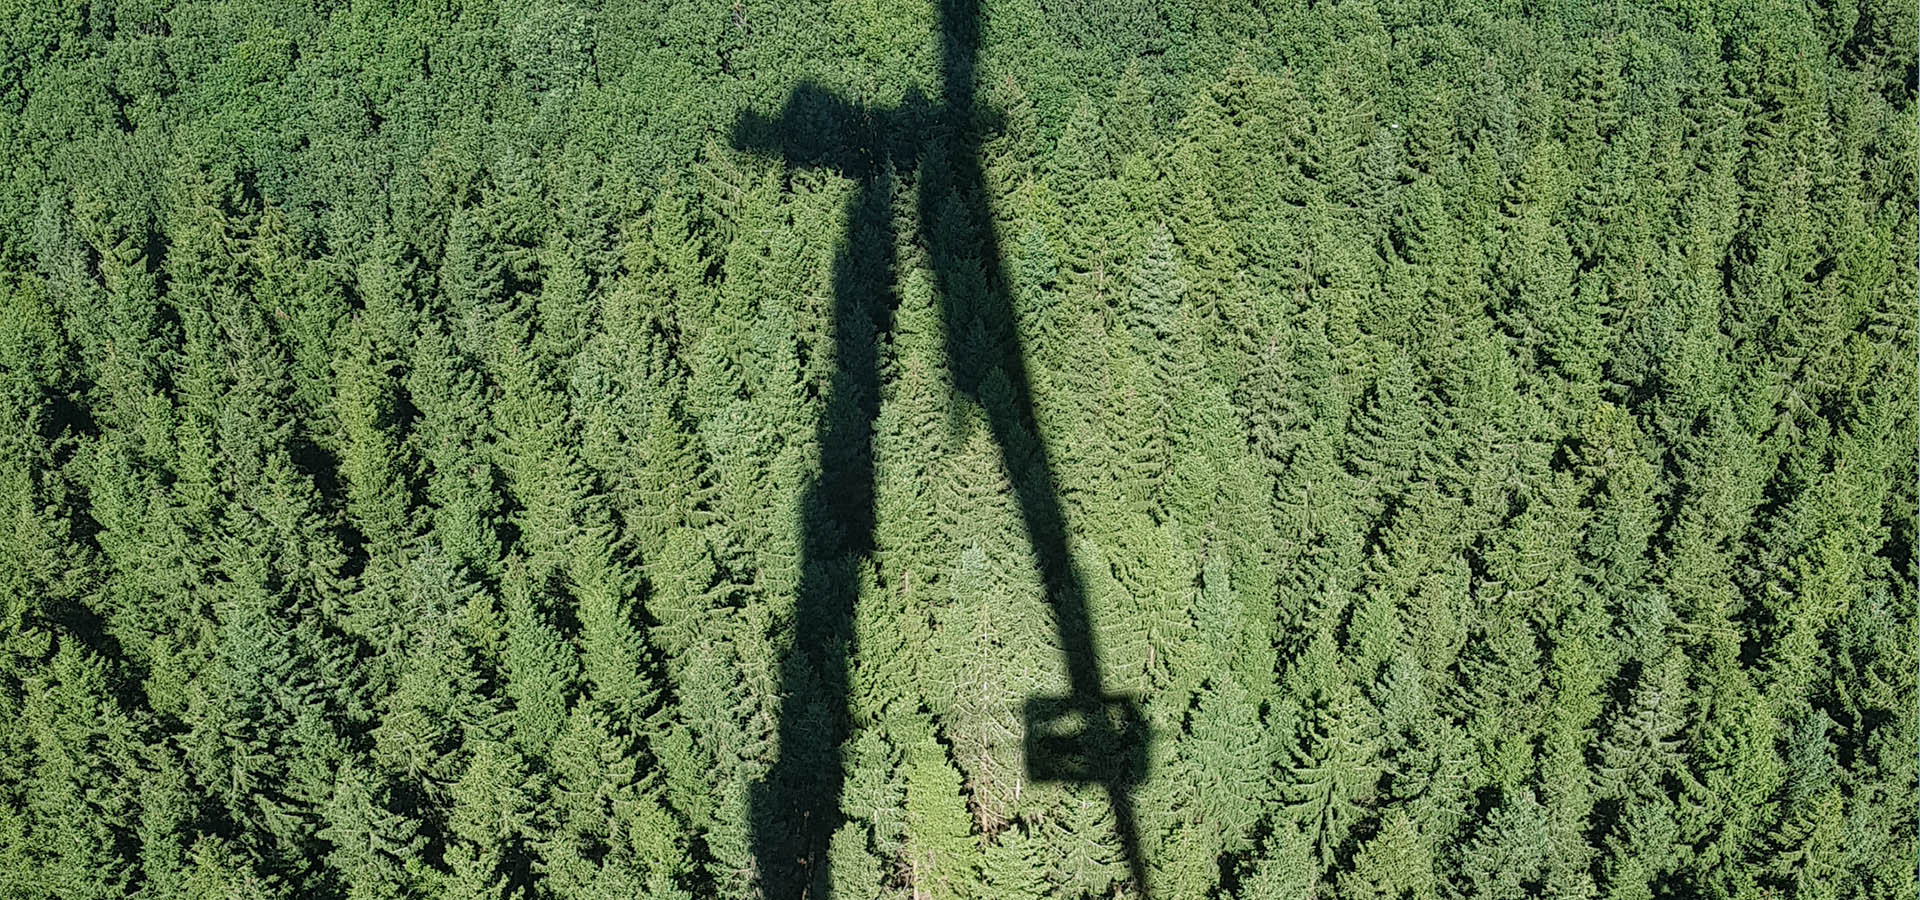 Rotor blade access system terra 1.1 - shadow on a forest under wind turbine.